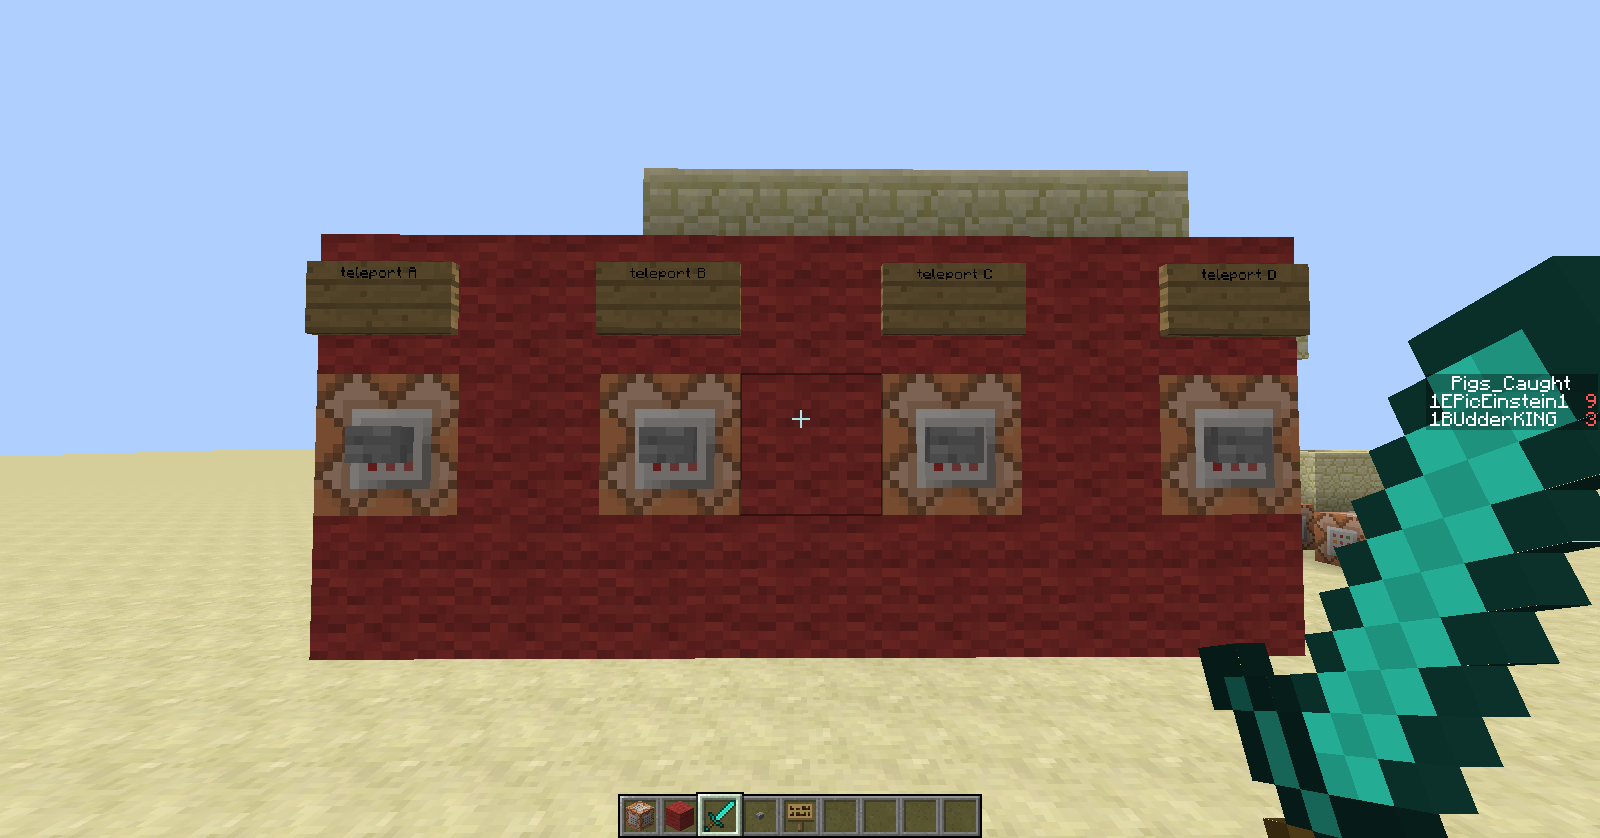 Minecraft Teleportationtp Per Player Command Block Redstone - Minecraft teleport player to location